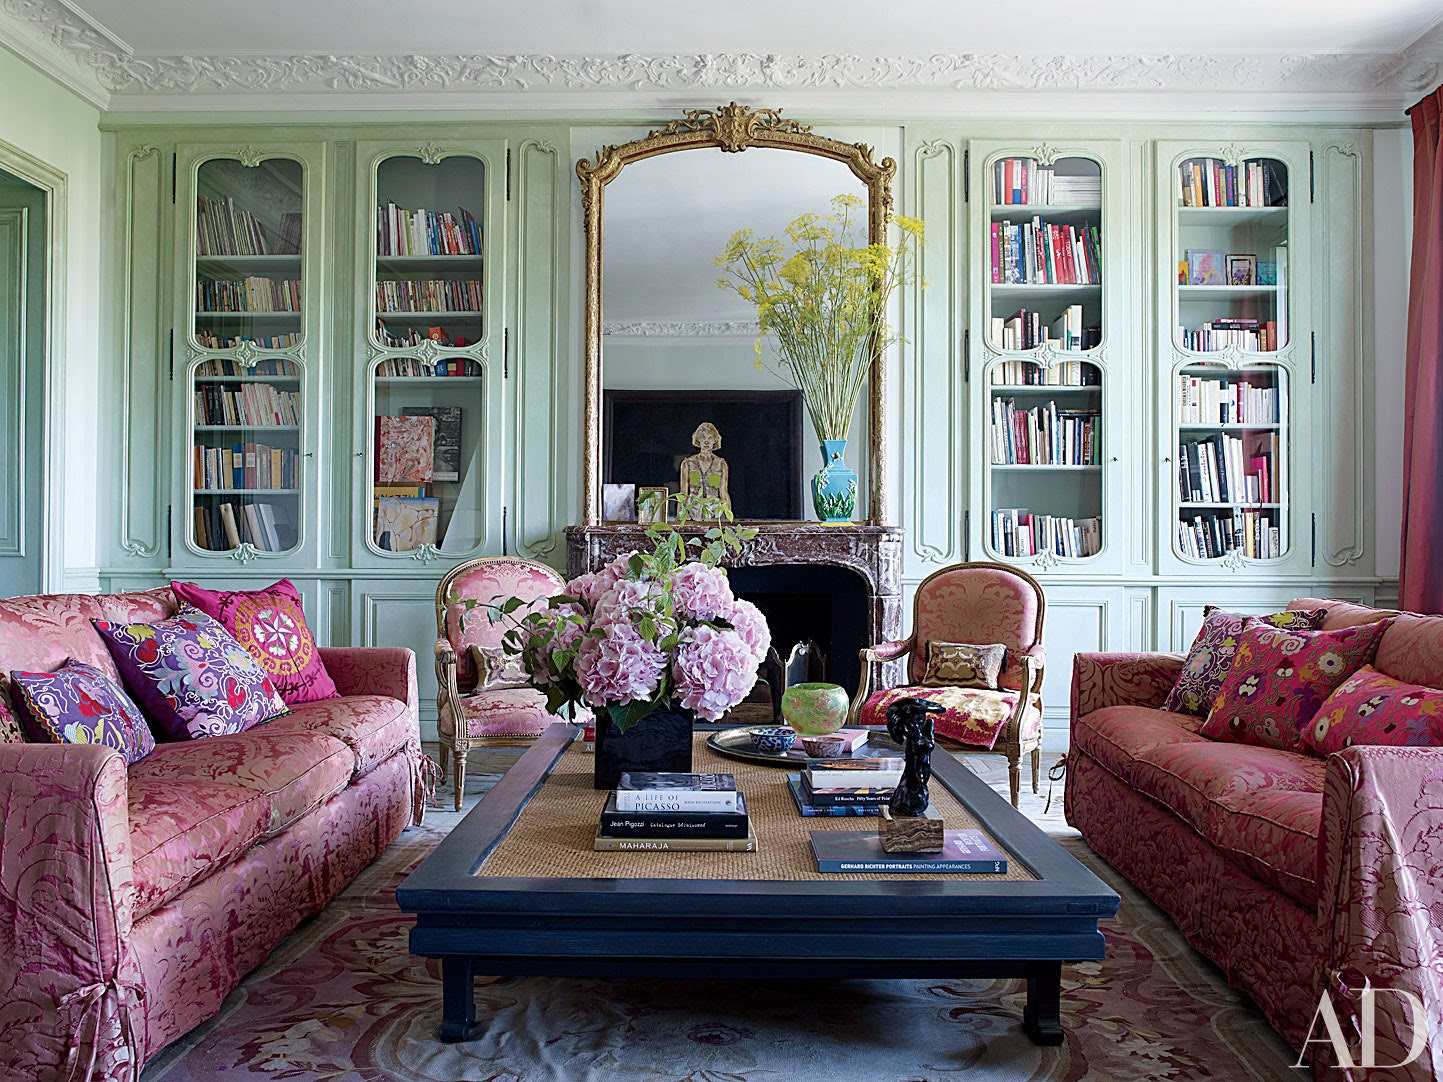 12 Unforgettable Parisian Apartments and Homes Photos  Architectural Digest